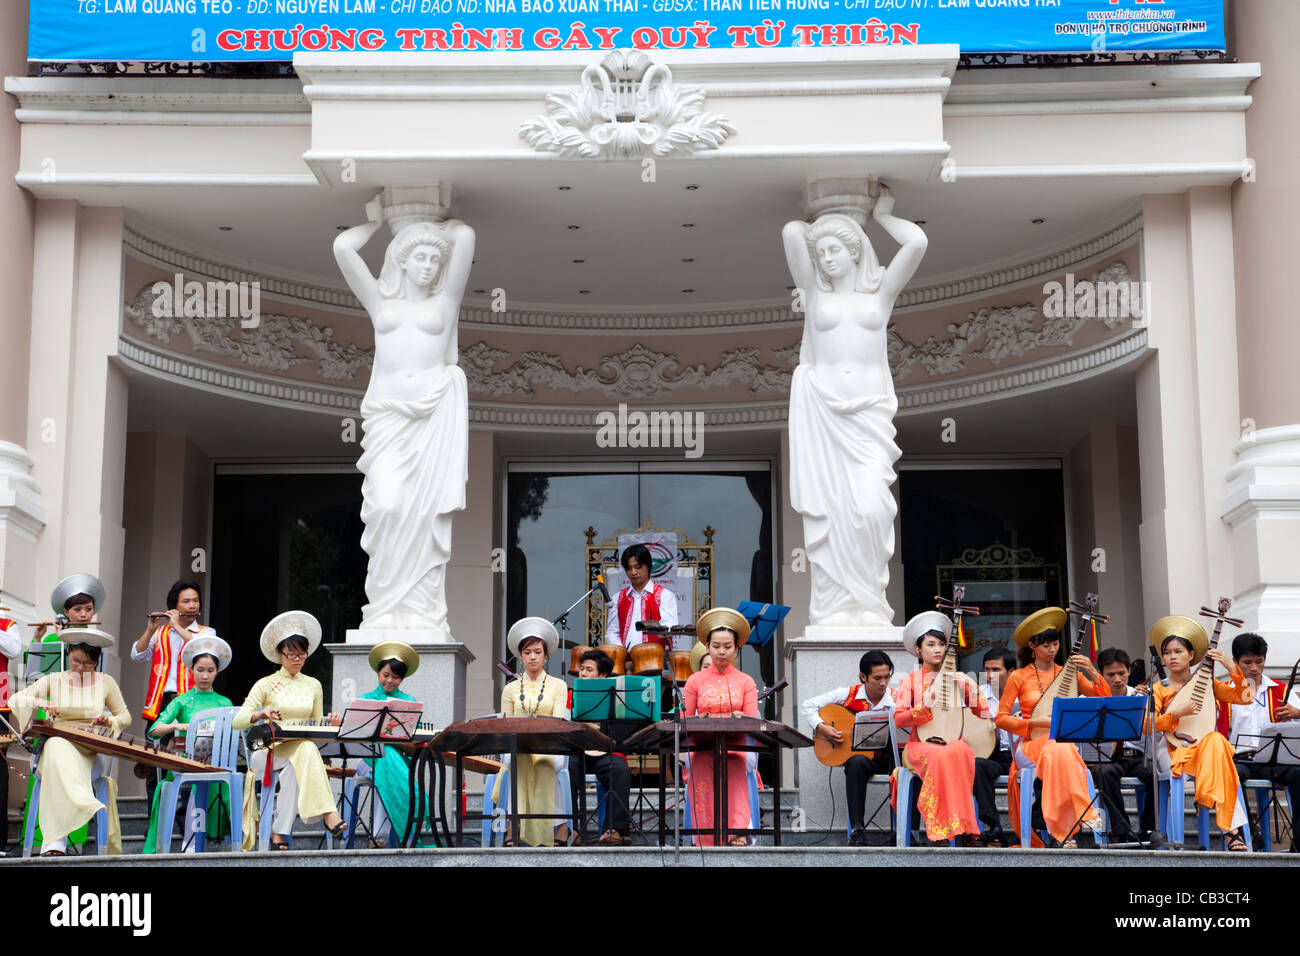 Vietnam, Ho Chi Minh City, The Opera House, Traditional Music